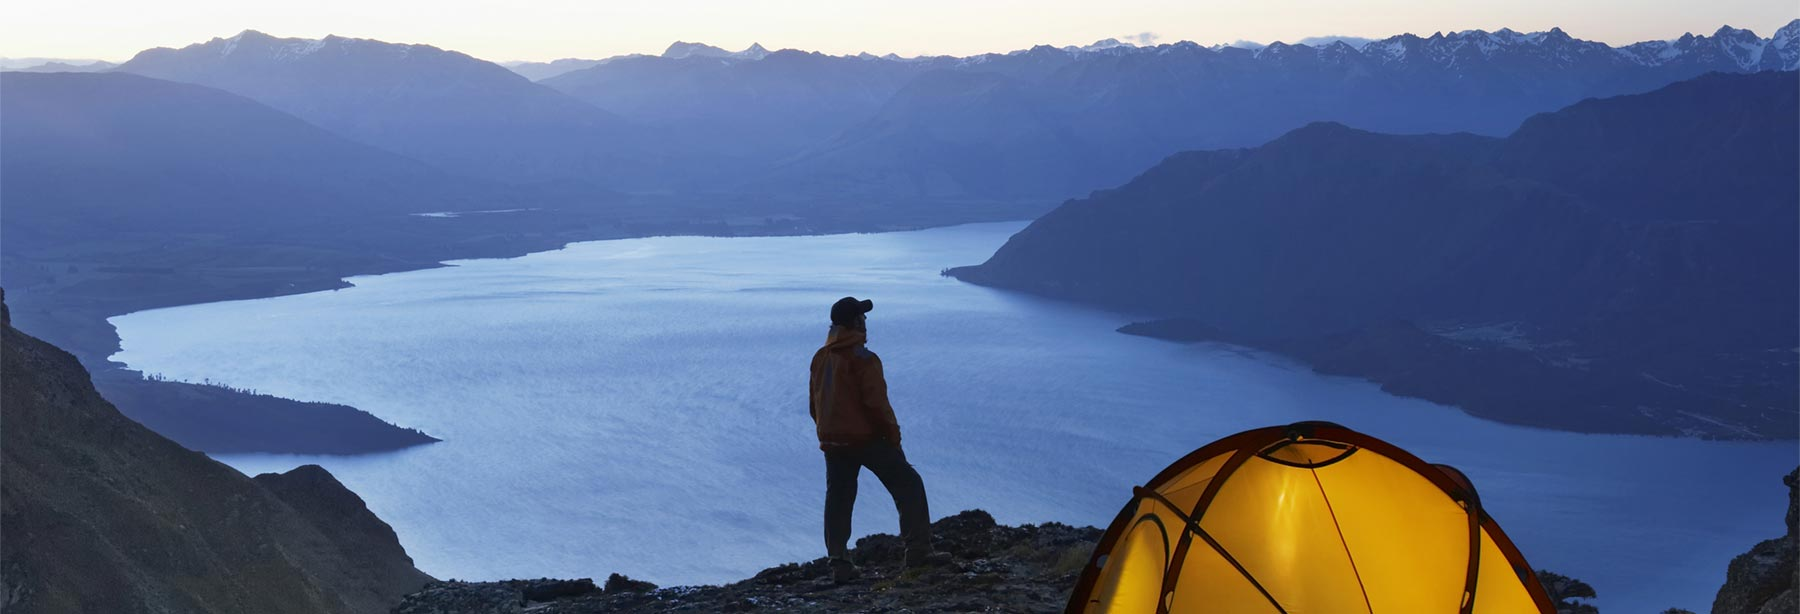 Outdoor Equipment | The Companionist